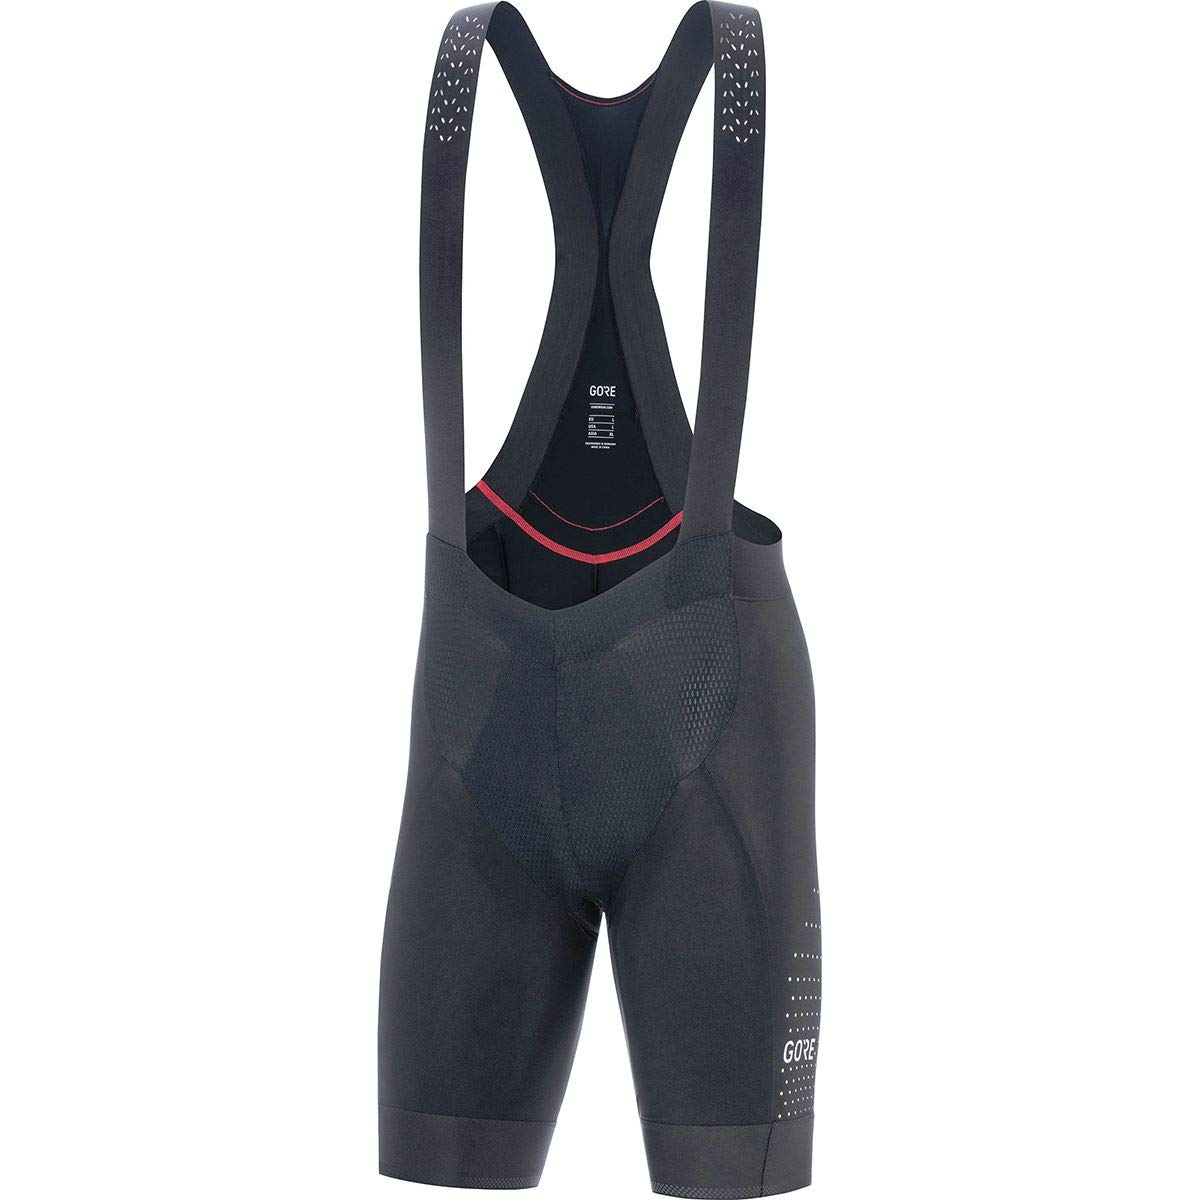 GORE WEAR C7 Men's Ventilated Racing Bib Shorts with Seat Insert, S, Black